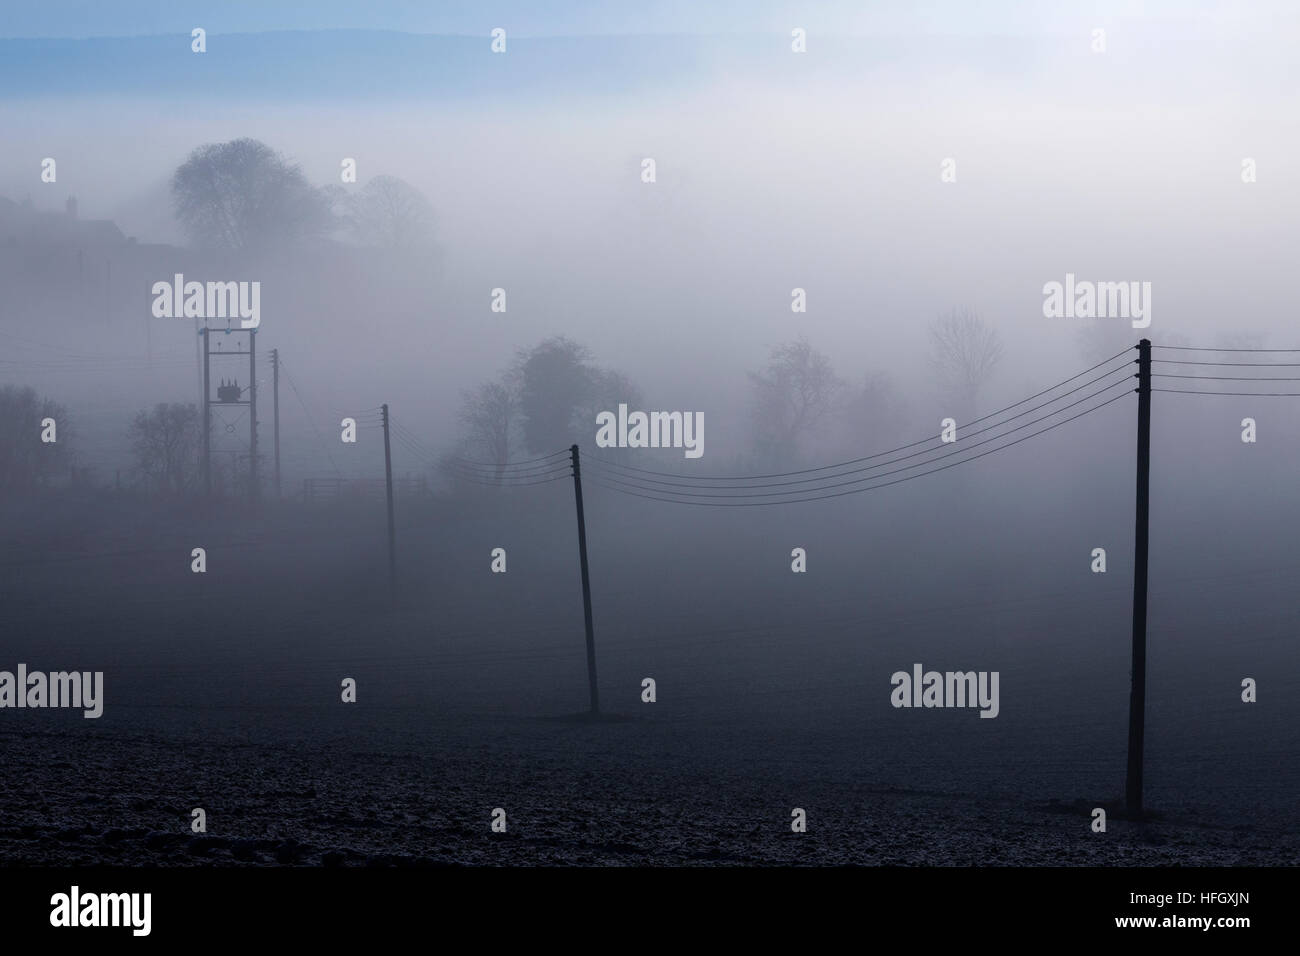 Mist and low cloud on a freezing cold December morning in North Yorkshire in the United Kingdom. - Stock Image